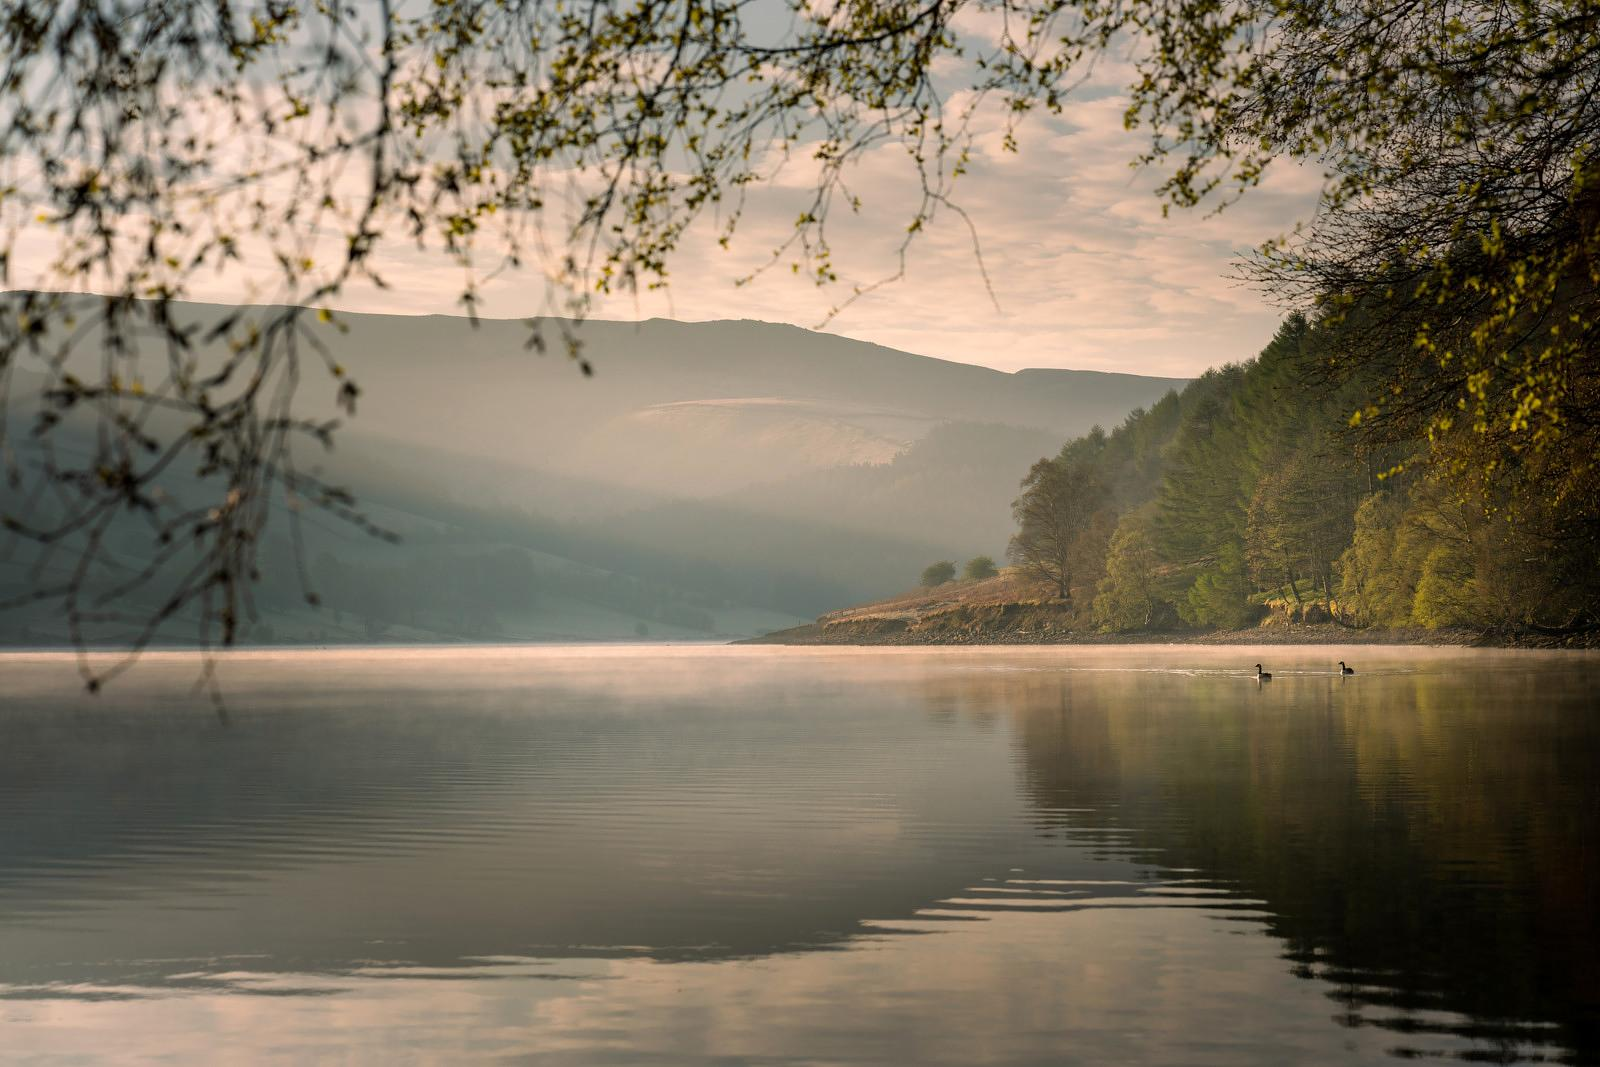 Morning at Ladybower